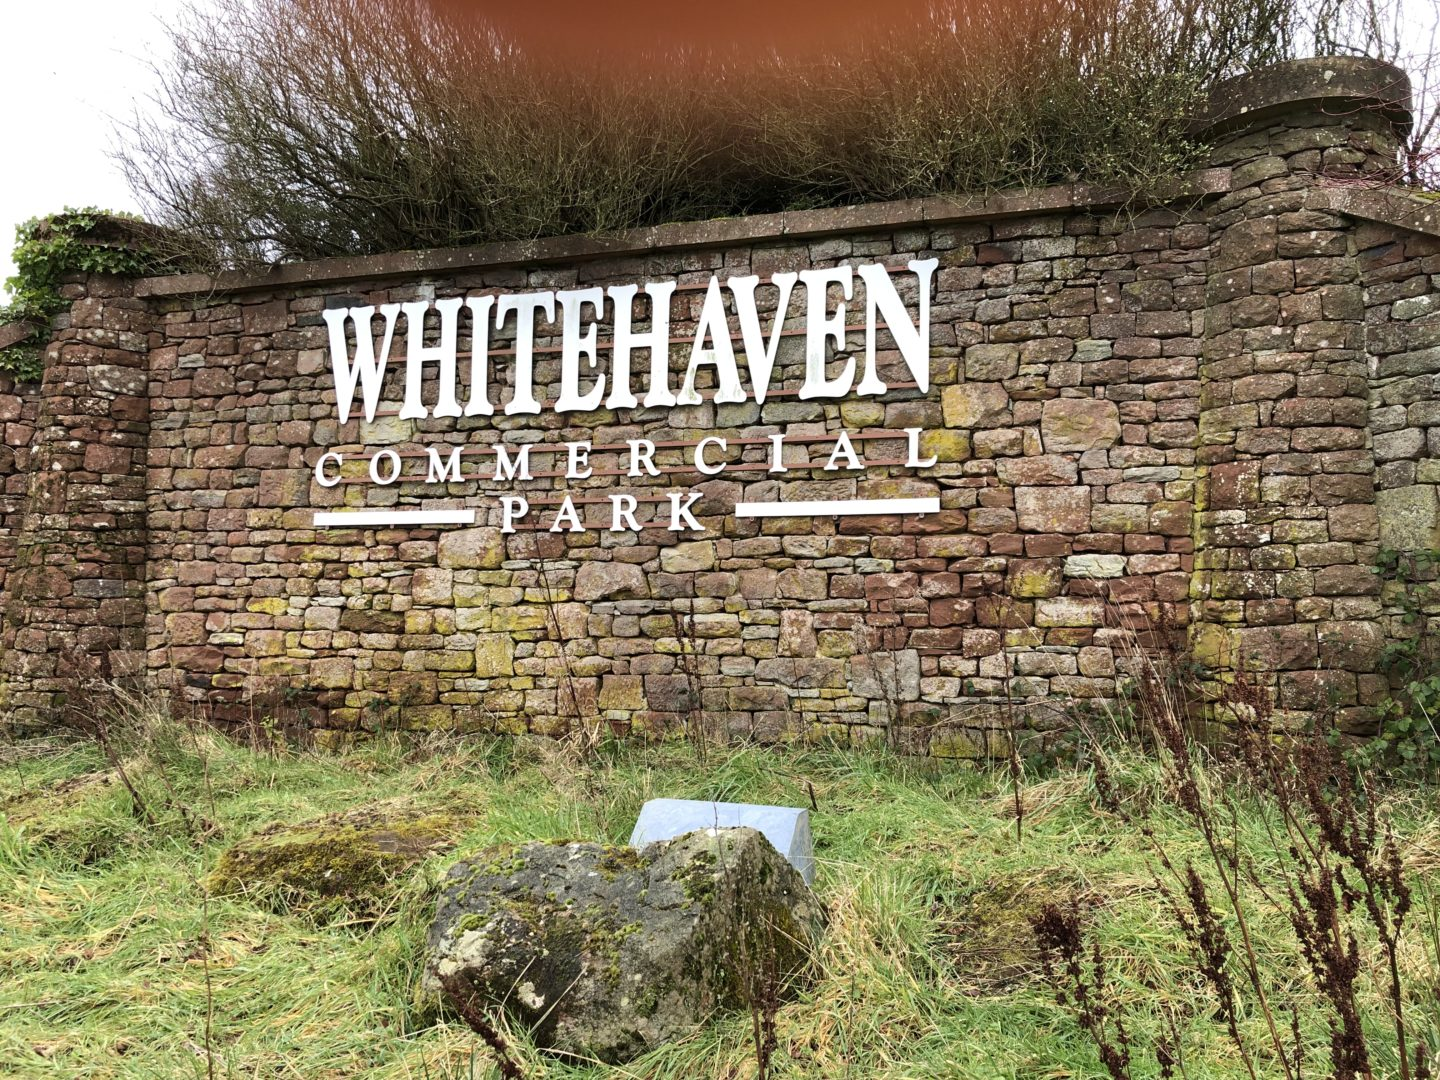 Land at Whitehaven Commercial Park, Whitehaven